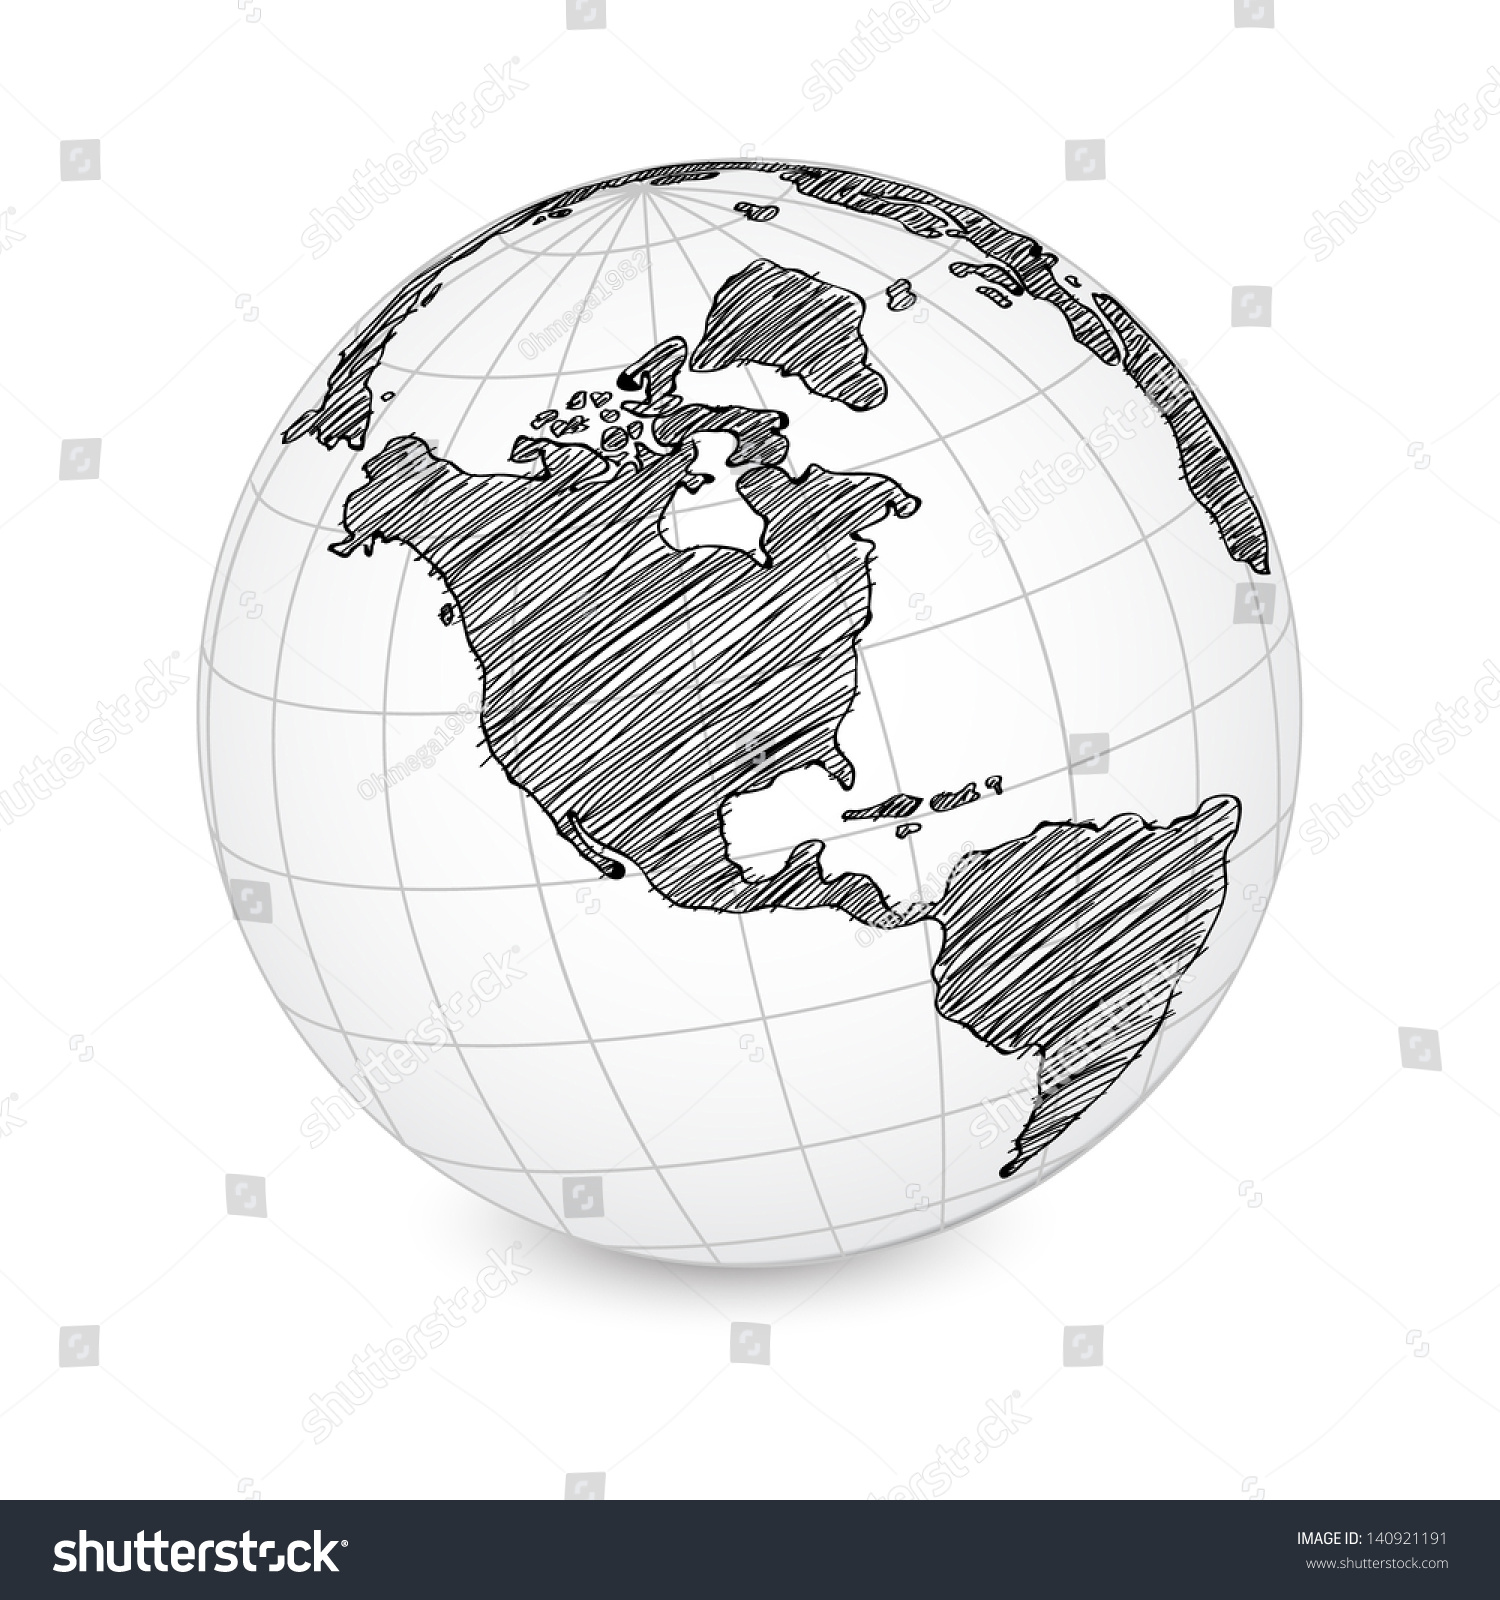 World map earth globe vector line vector de stock140921191 shutterstock world map earth globe vector line sketched up illustrator eps 10 gumiabroncs Image collections